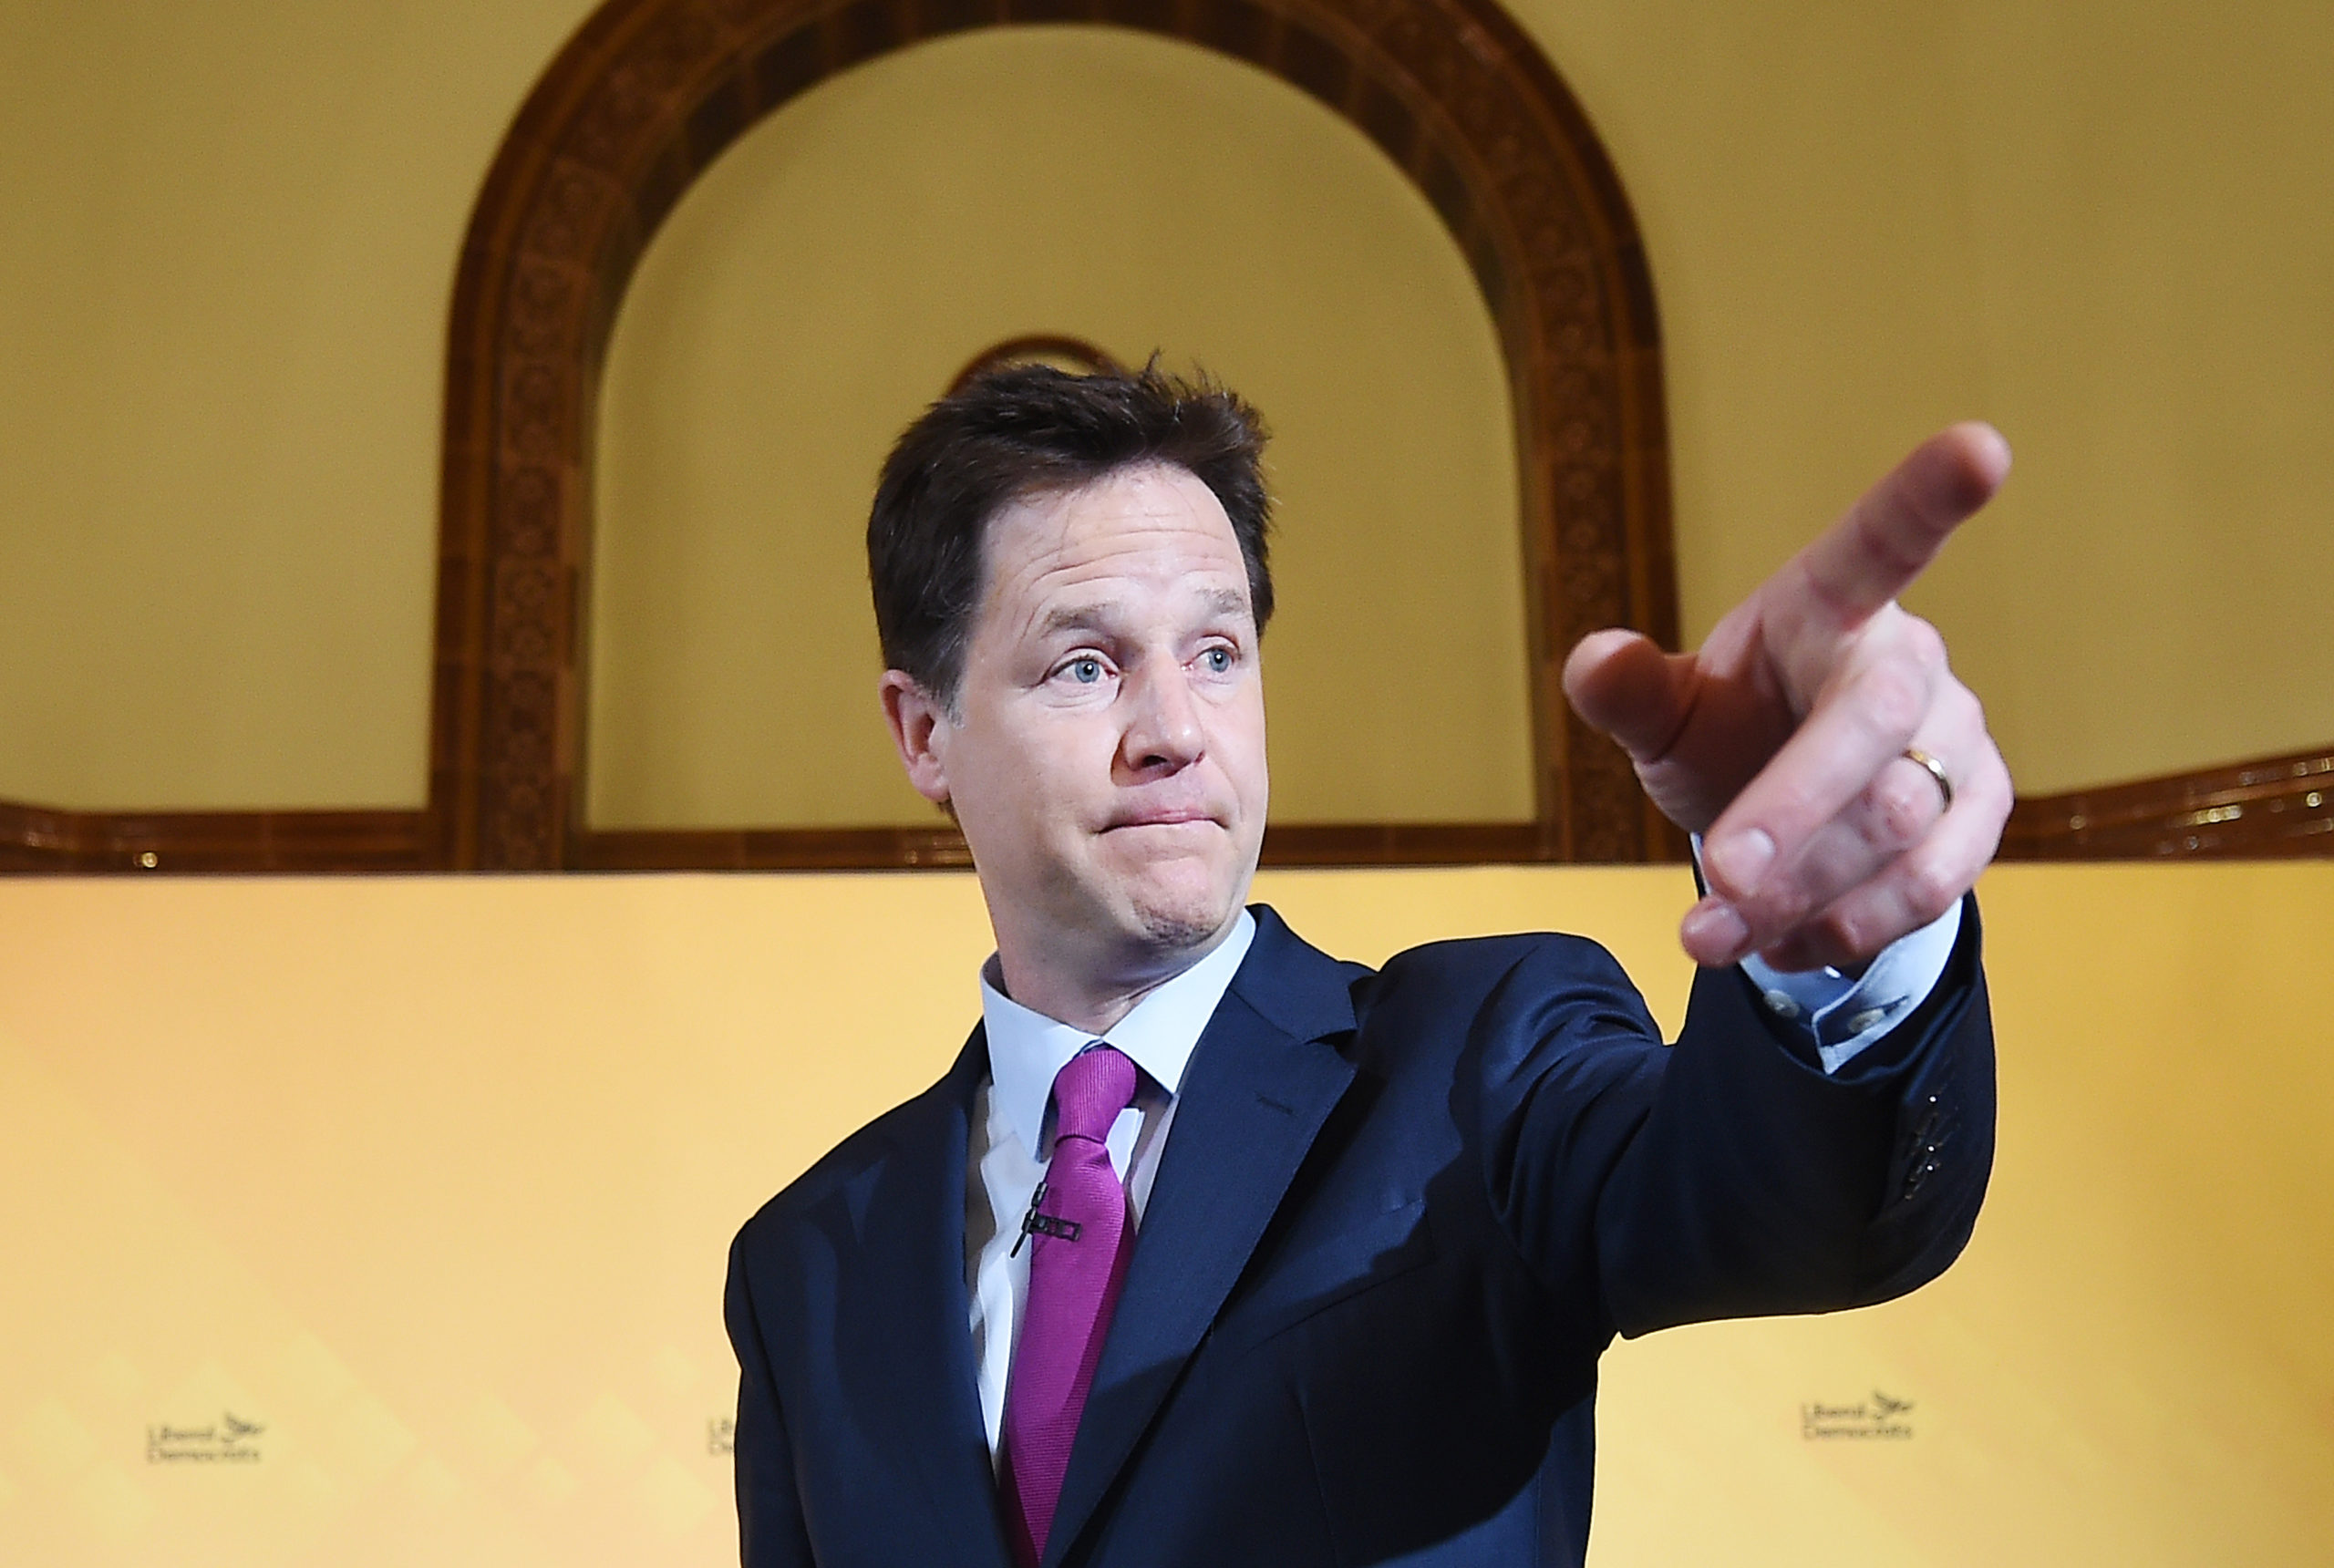 Photo of Facebooks Clegg: Impossible for Cambridge Analytica-style scandal to happen again